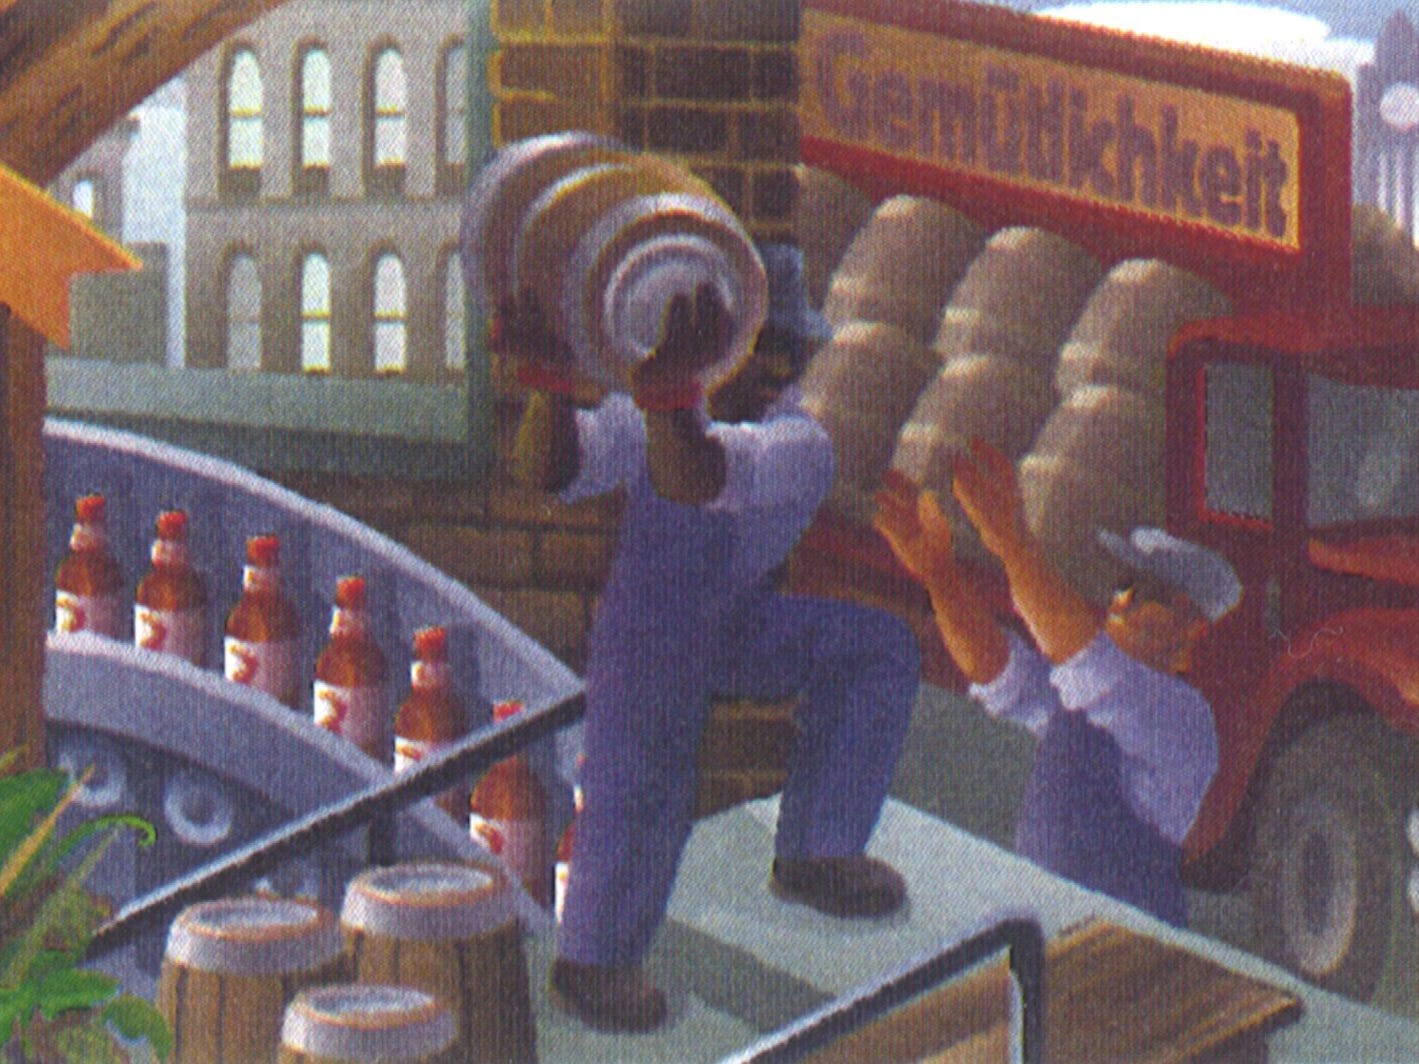 A Miller Park mural depicts Milwaukee's brewing history.